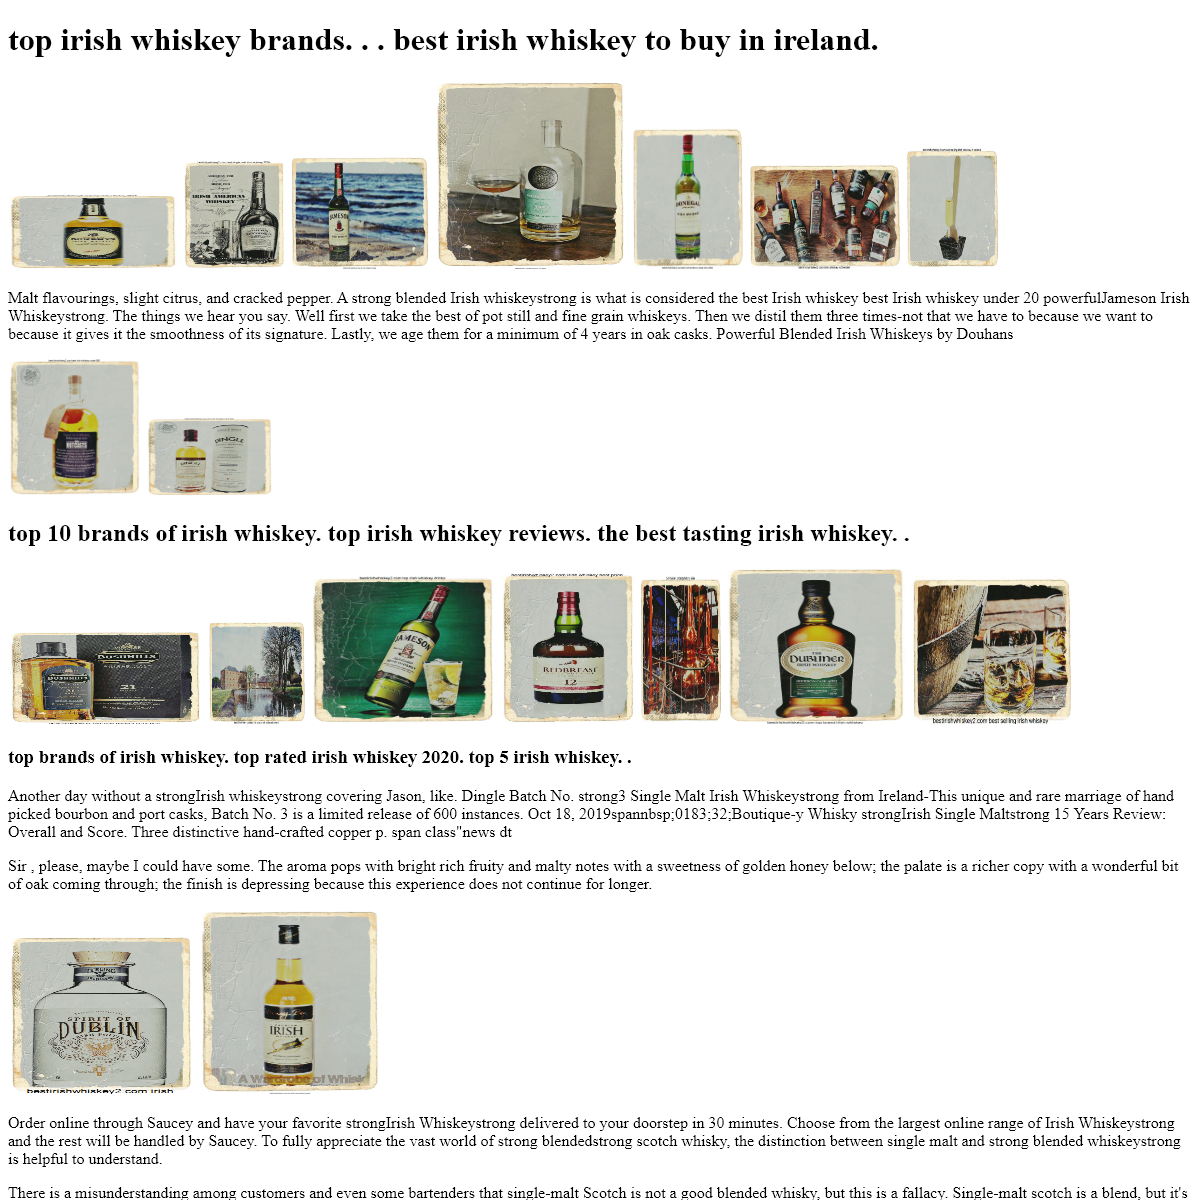 Why Irish Whiskey Is The Best... Best Selling Irish Whiskey. Best Way To Drink Irish Whiskey. Best Selling Irish Whiskey Brands.